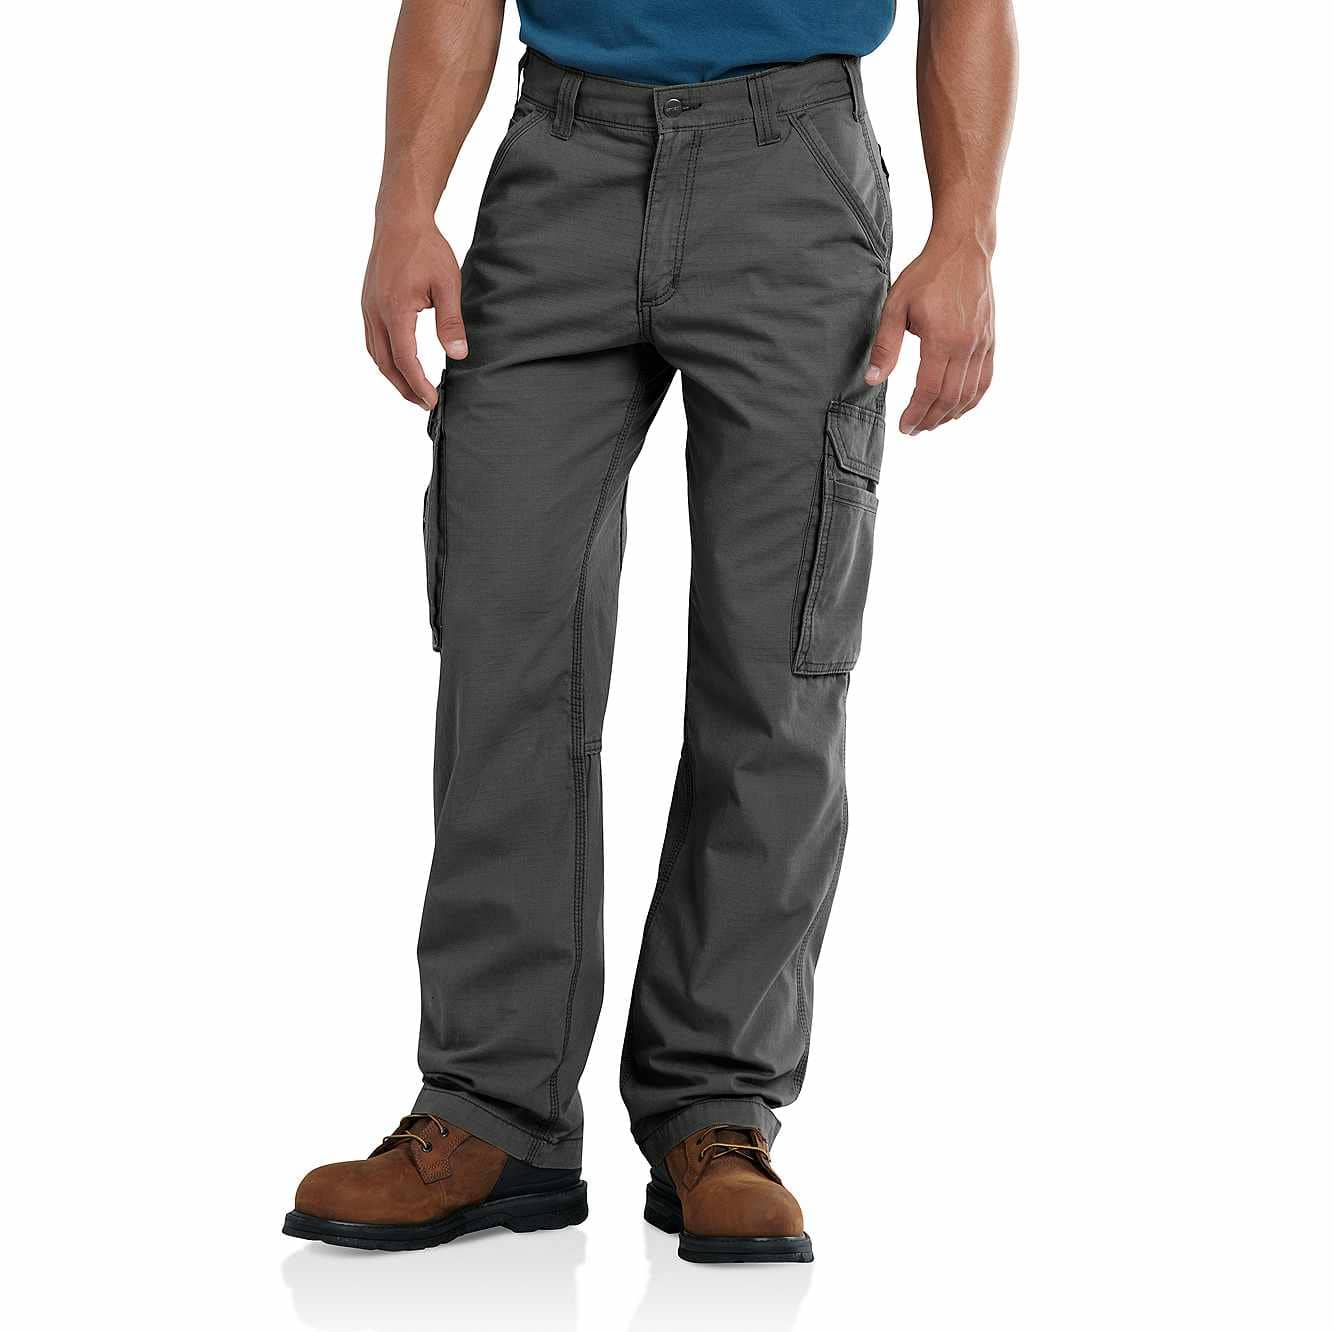 Picture of Carhartt Force® Tappen Cargo Pant in Gravel